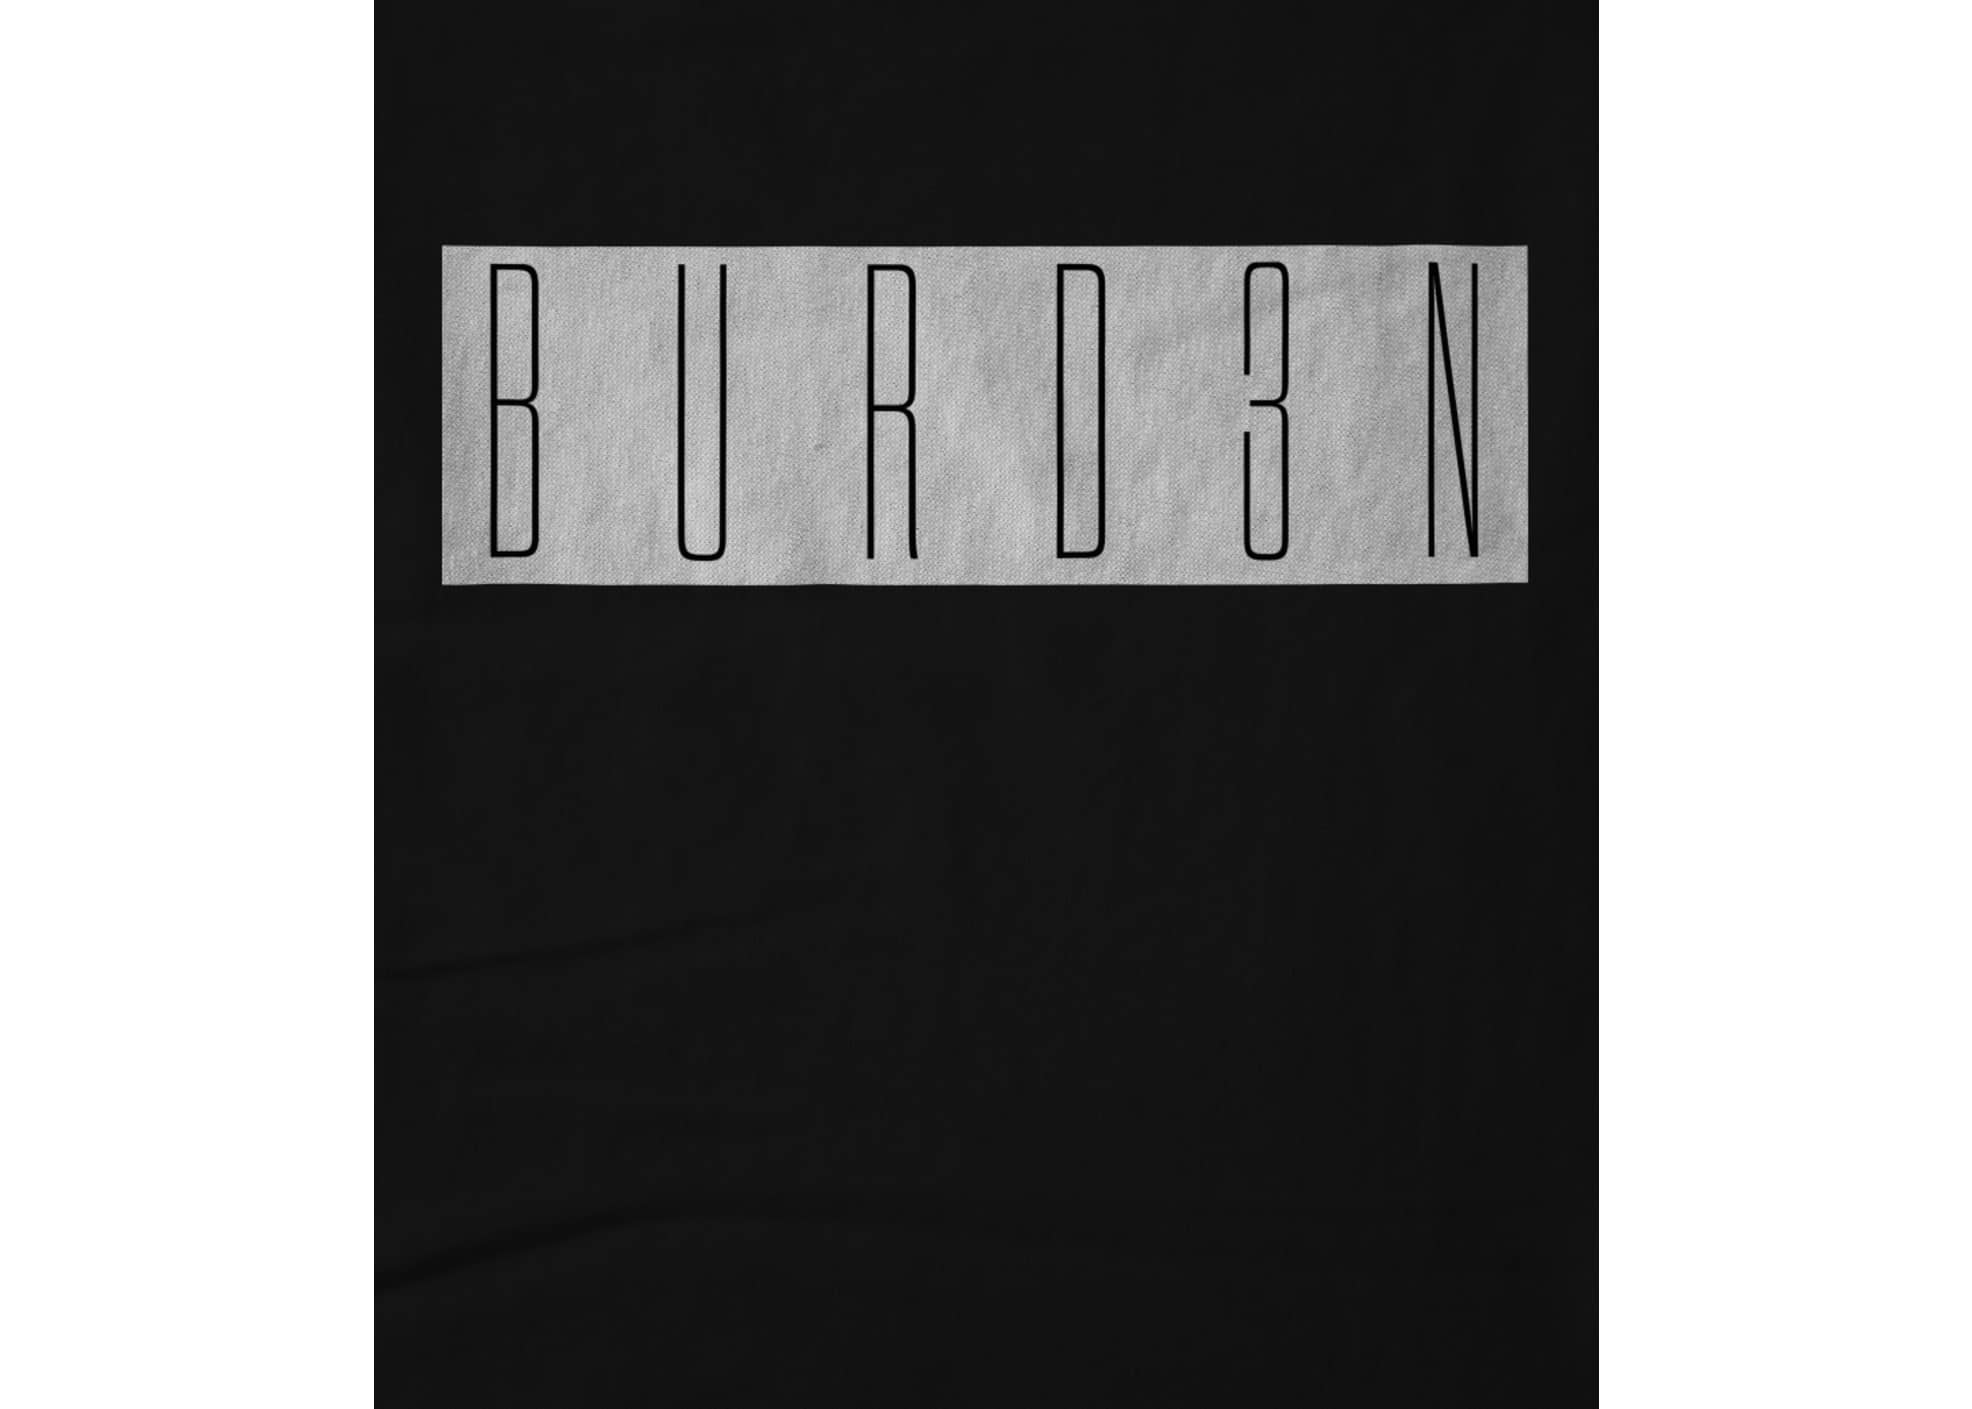 Burden of the sky burd3n   black 1585955447